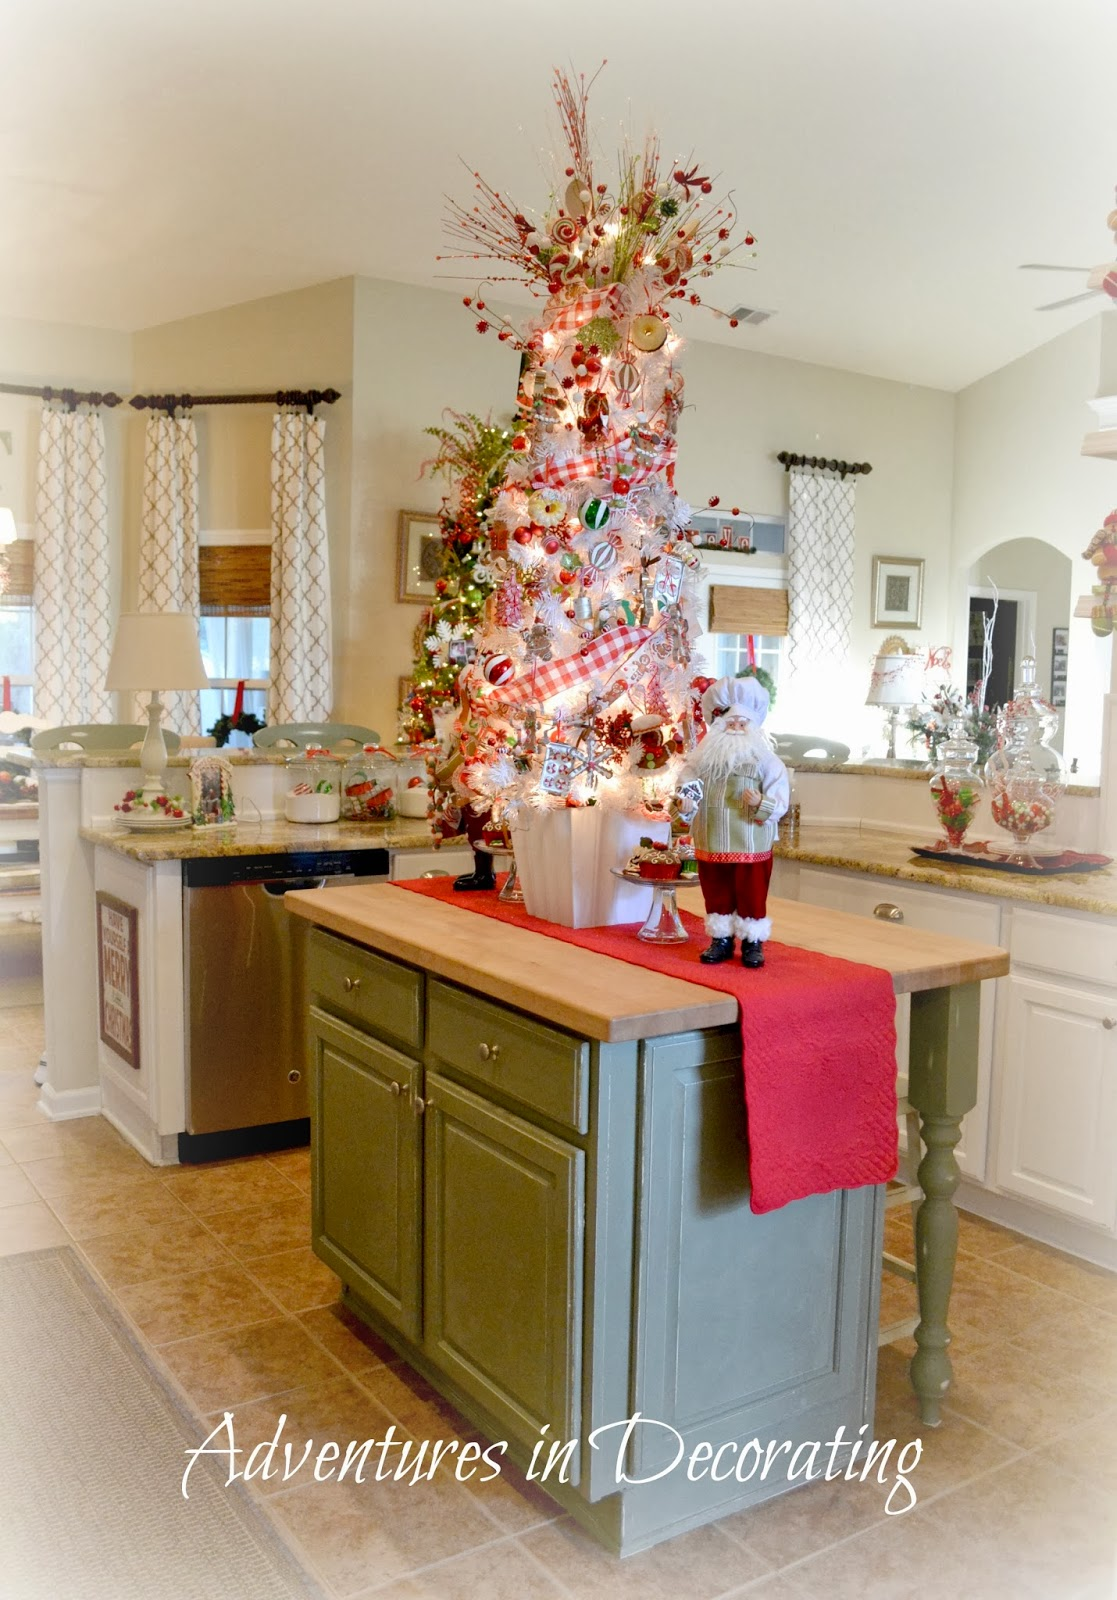 Great Christmas Gifts For Boyfriend: Adventures In Decorating: Our Christmas Great Room And